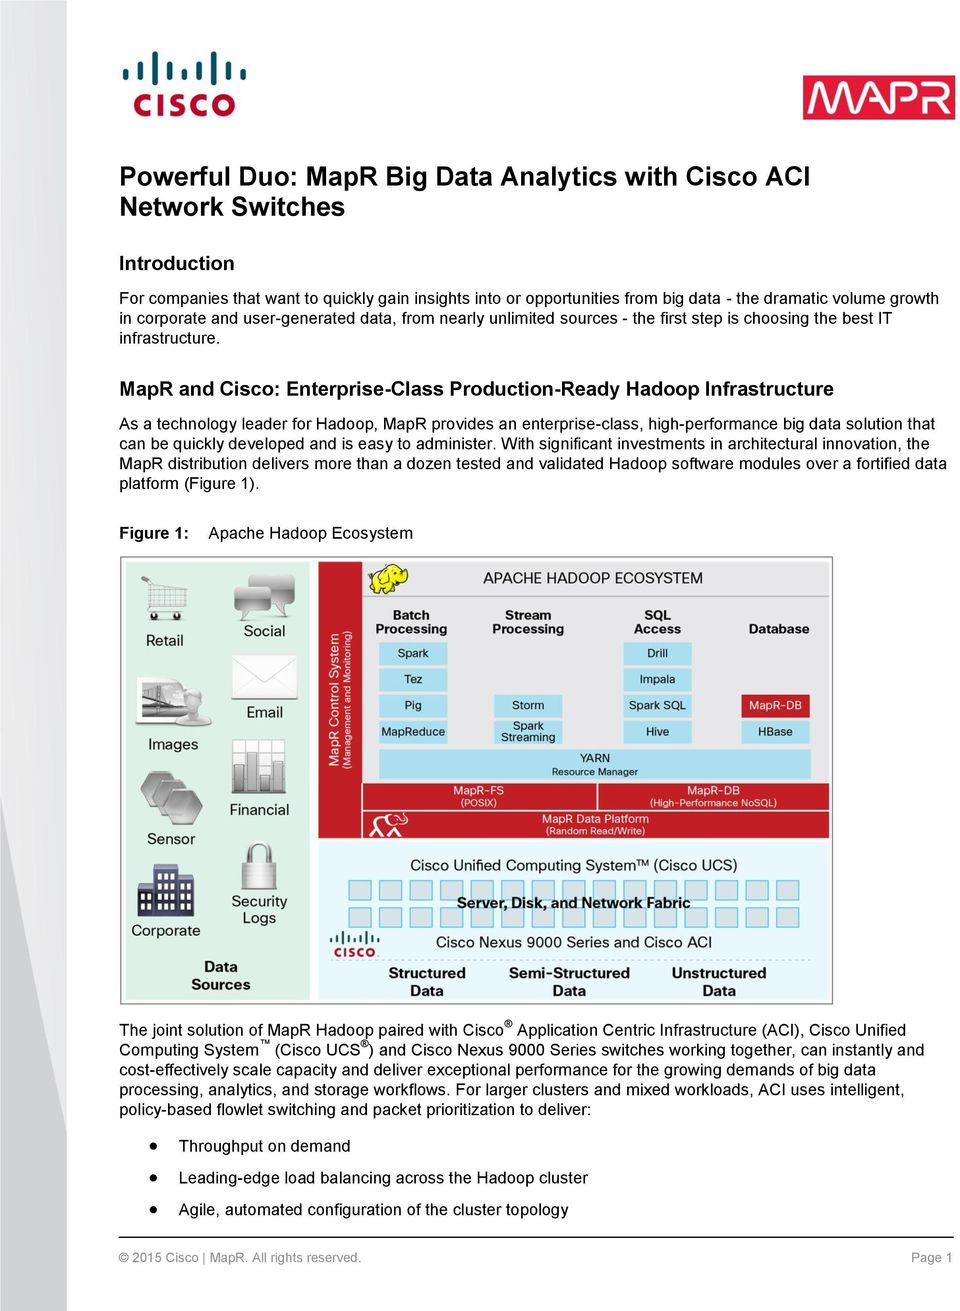 MapR and Cisco: Enterprise-Class Production-Ready Hadoop Infrastructure As a technology leader for Hadoop, MapR provides an enterprise-class, high-performance big data solution that can be quickly